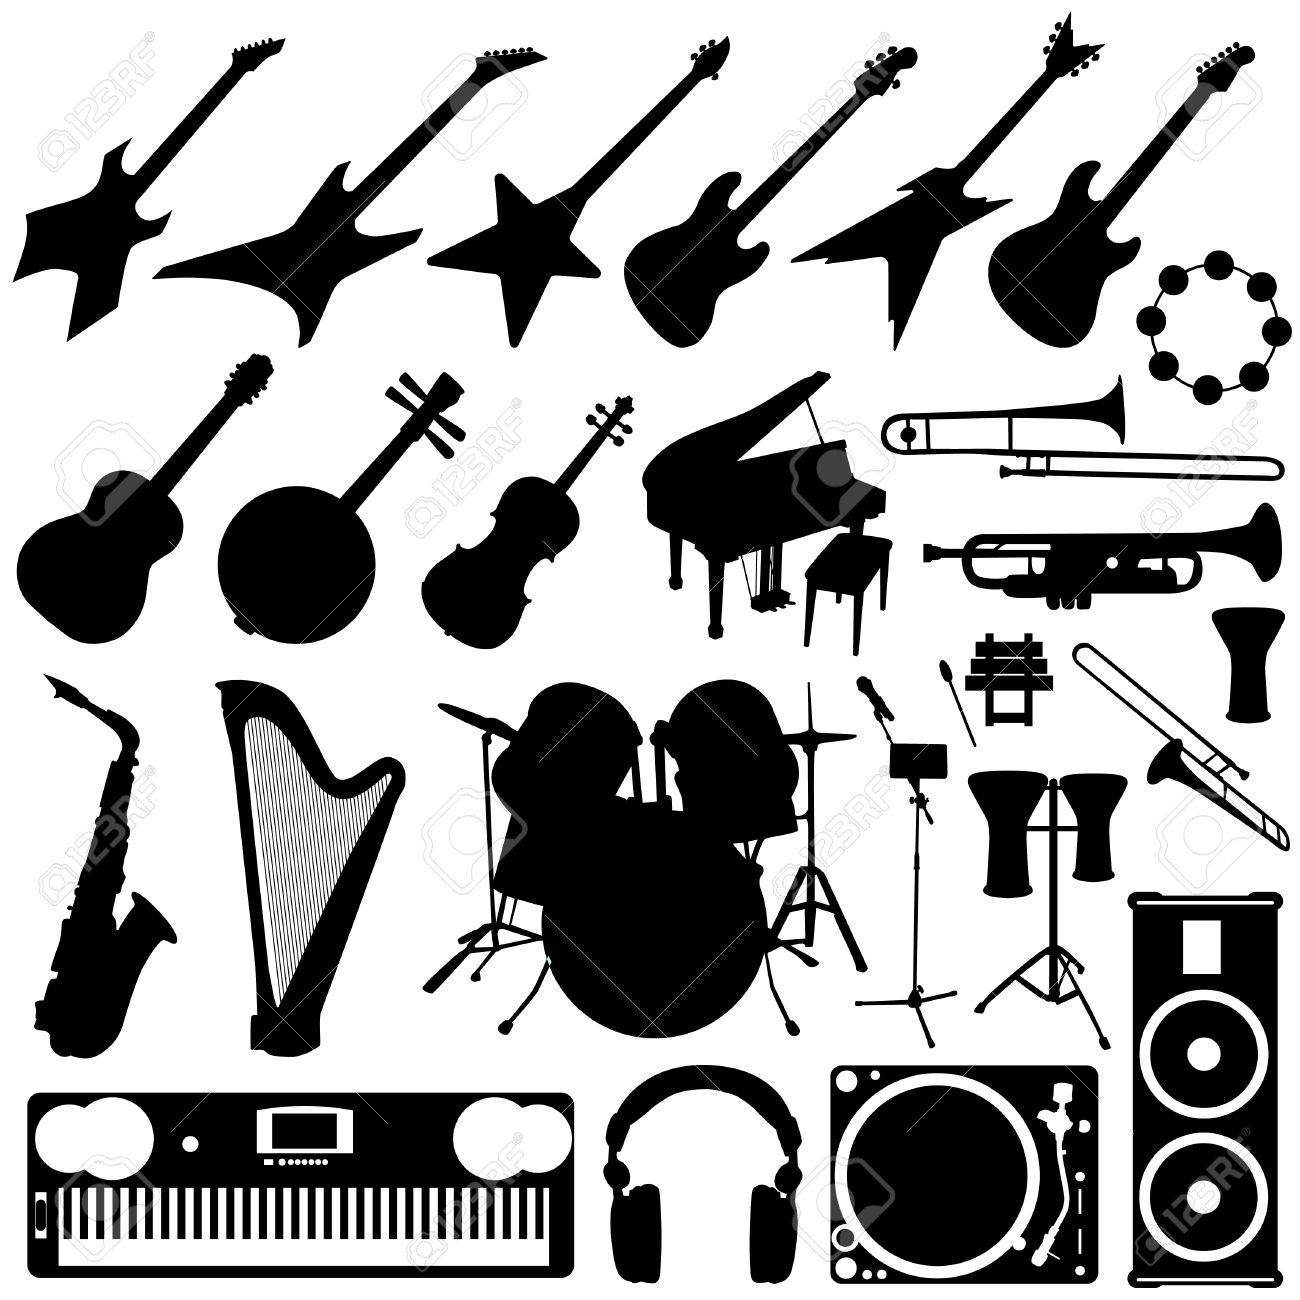 hight resolution of rock band drums clipart band instruments music